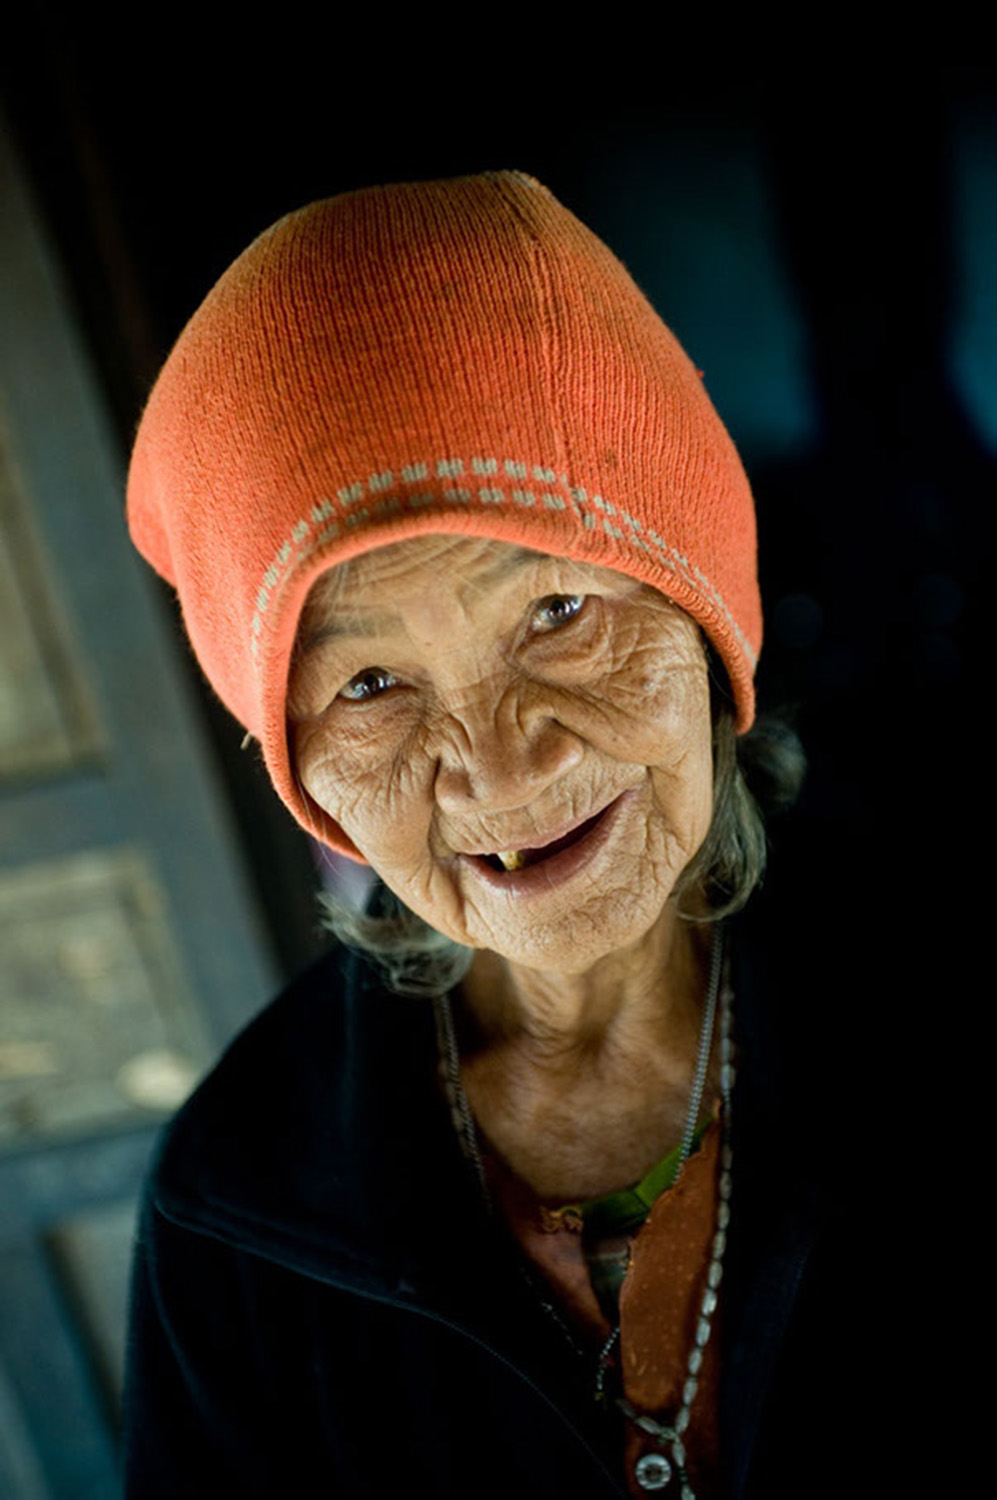 image of AARONTAIT COPYRIGHTED 2014 297I TRAVEL PHOTOGRAPHER ASIA REPORTAGE EDITORIAL STORY HUMANS LIFE EARTH TRAVELER EXPLORE CULTURE PEOPLE COUNTRY NATIONALITY DOCUMENTARY VIETNAM ELDER OLD LADY RURAL HAPPY